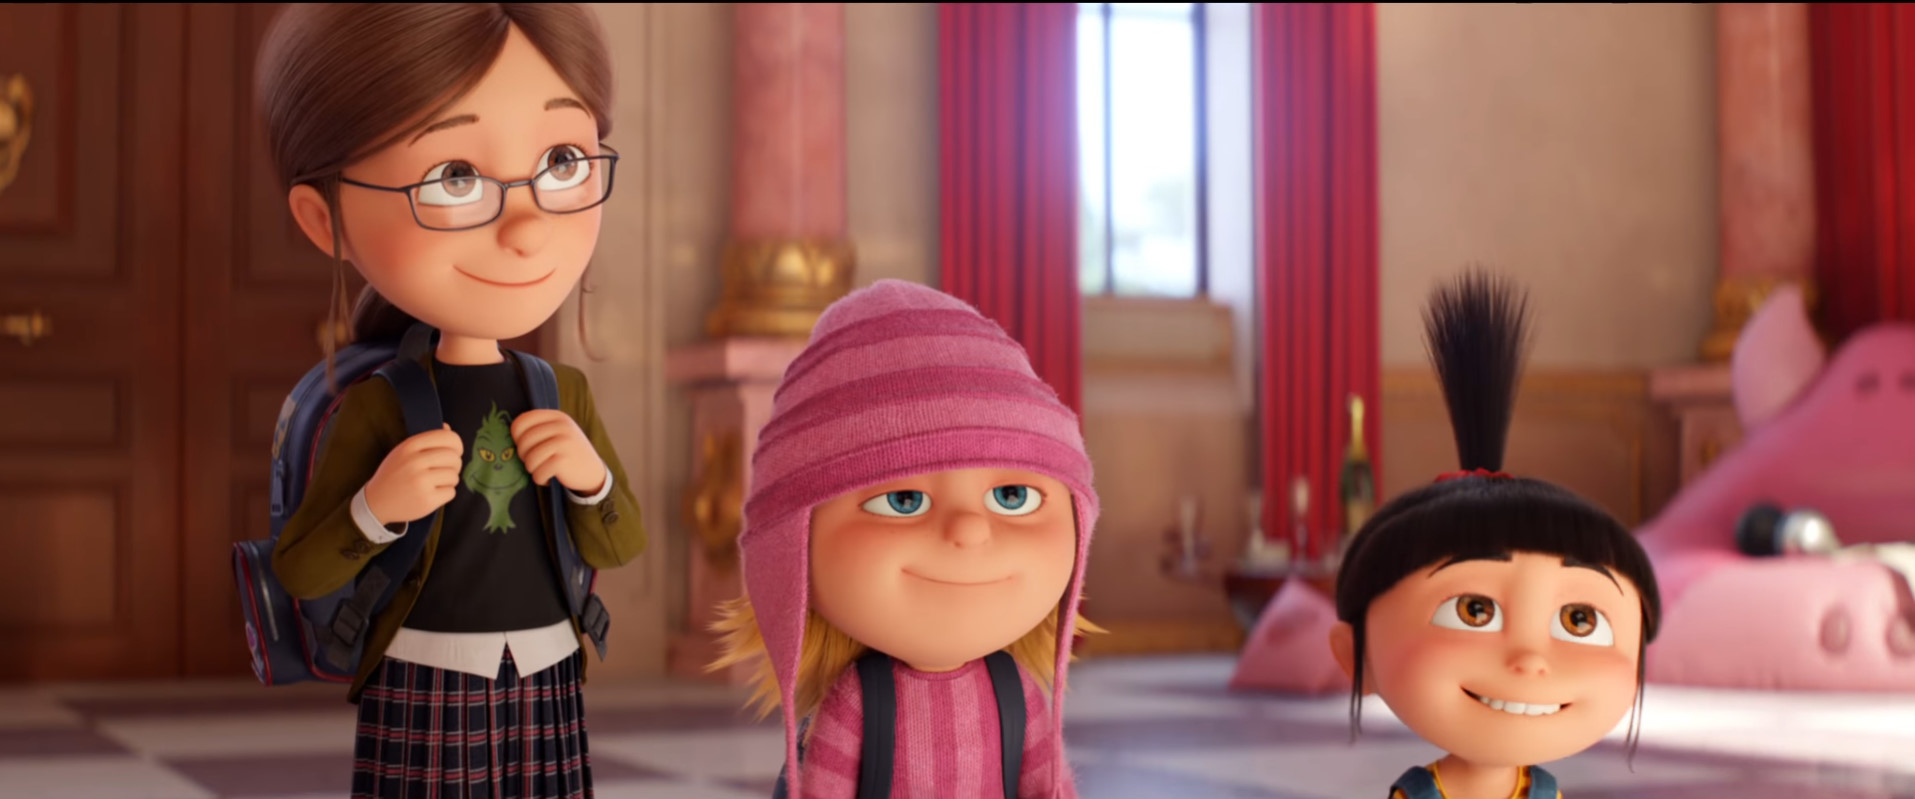 despicable_me_3_girls_by_santafeflyer-db2egxw